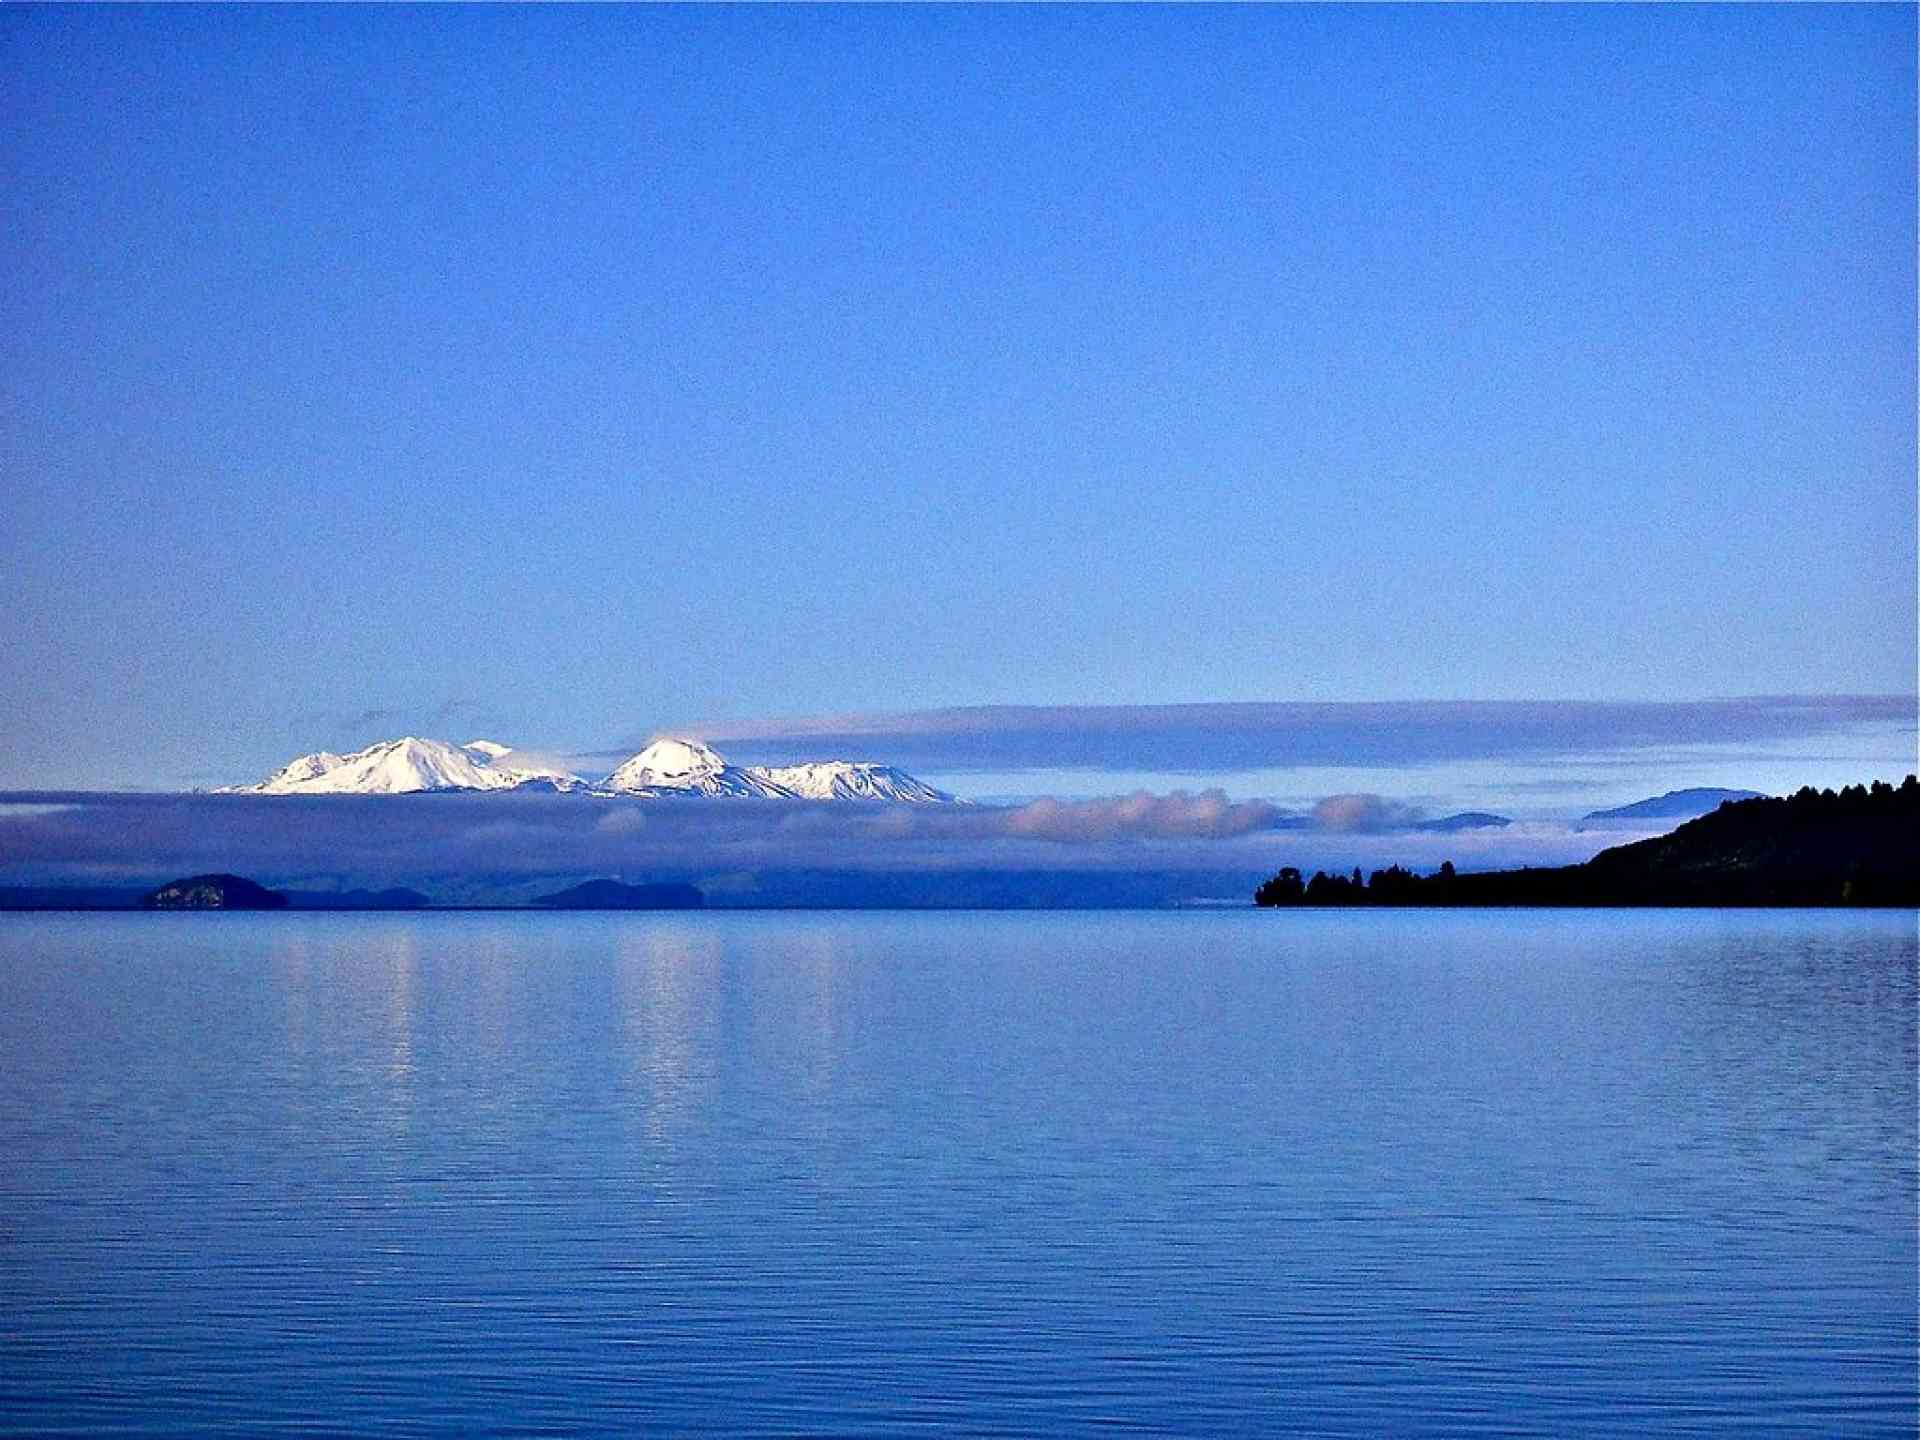 Taupo, New Zealand by Herry Lawford